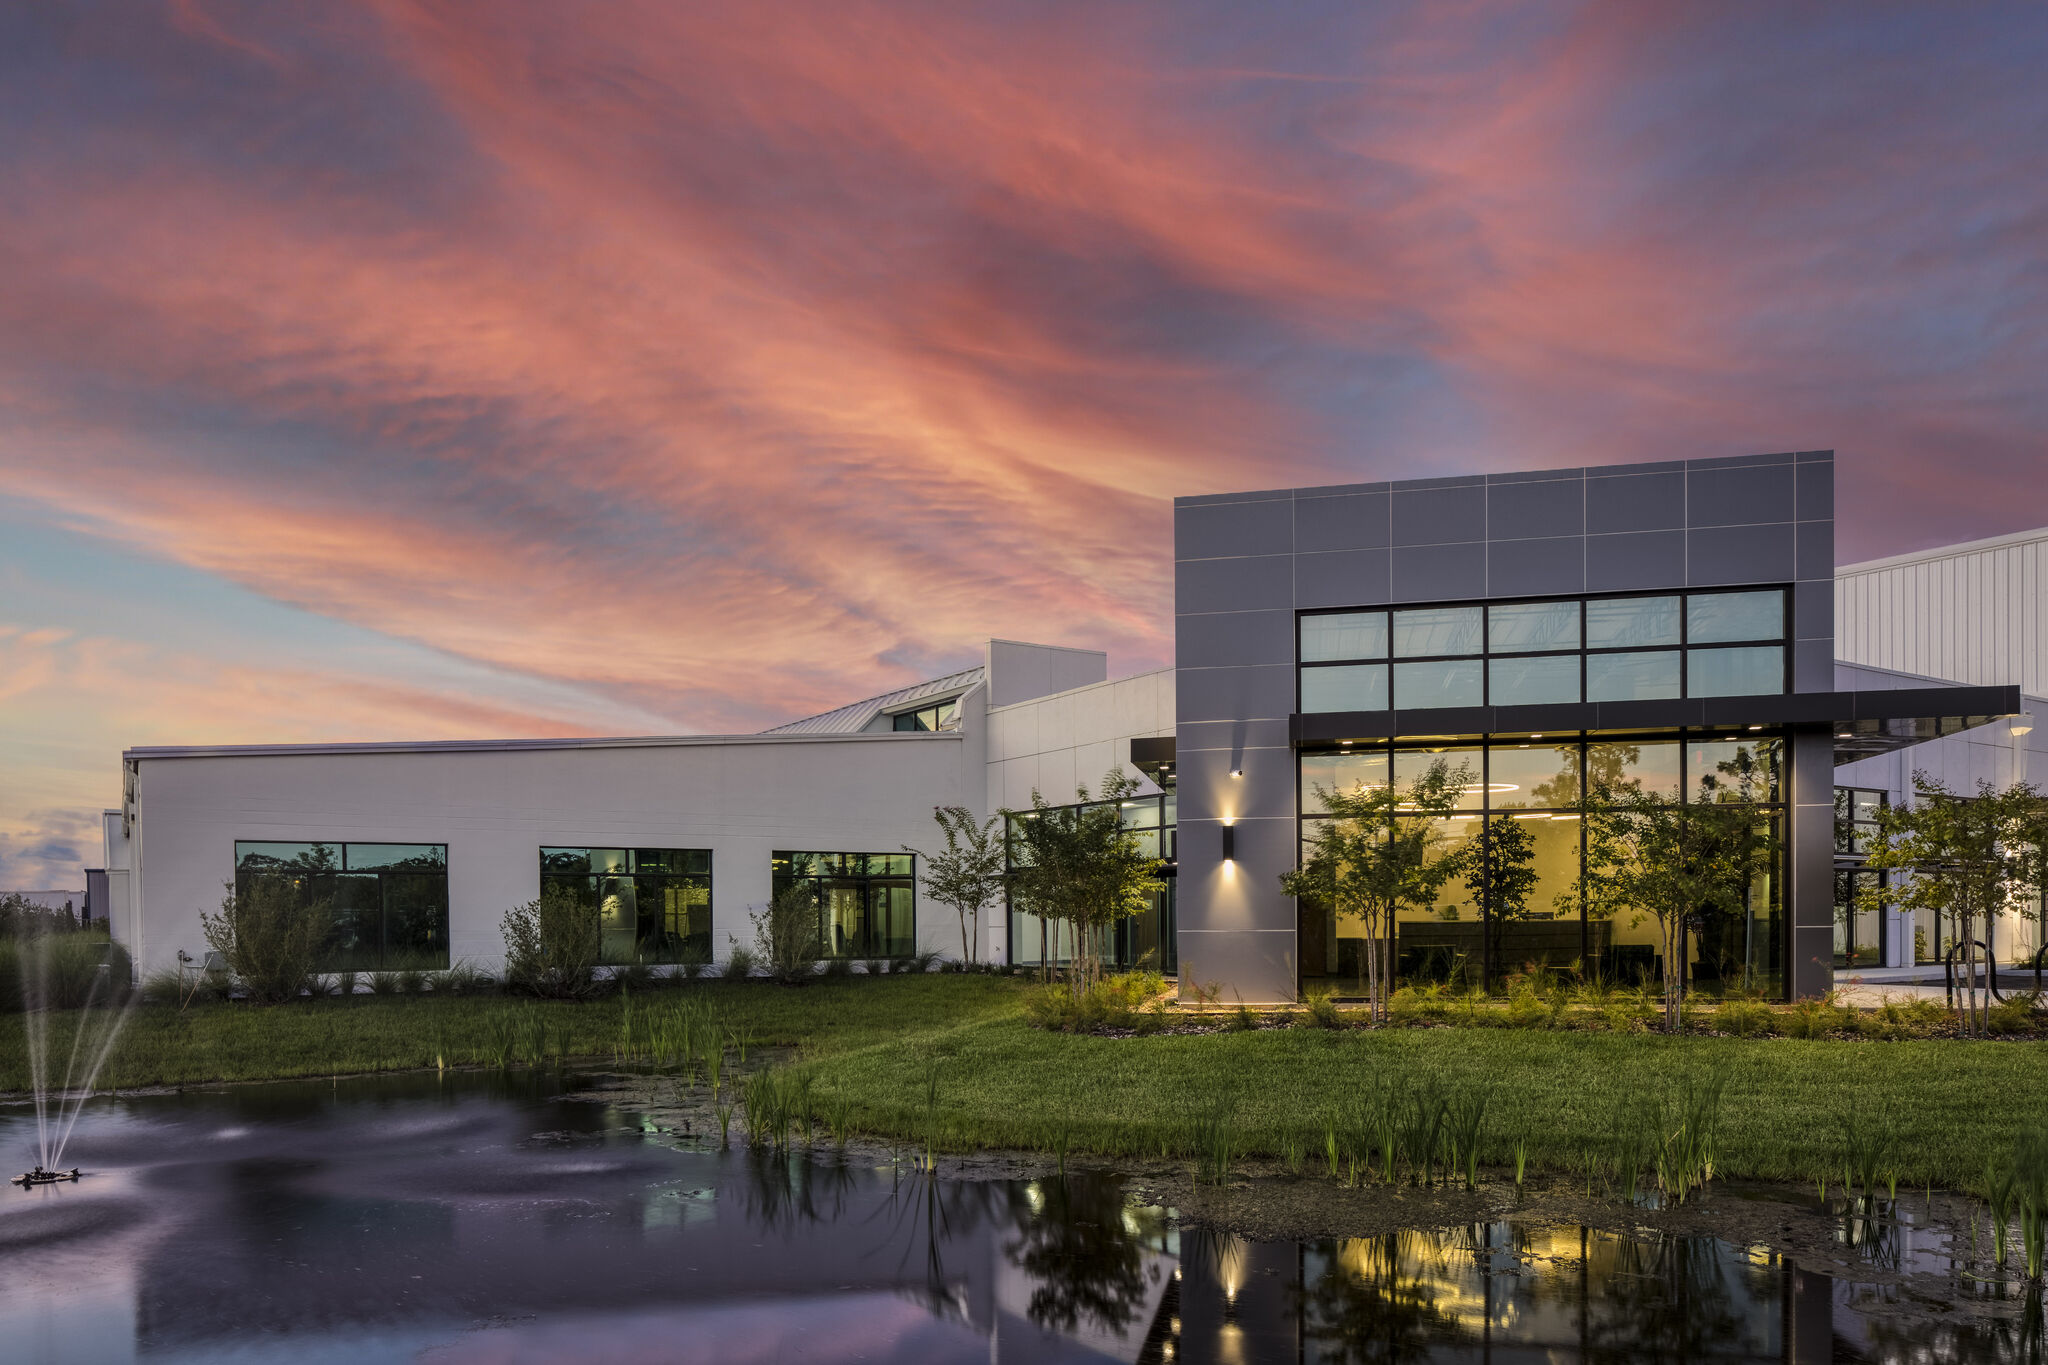 Formulated Solutions Completes Large Scale Footprint, Capacity, and Capabilities Expansion